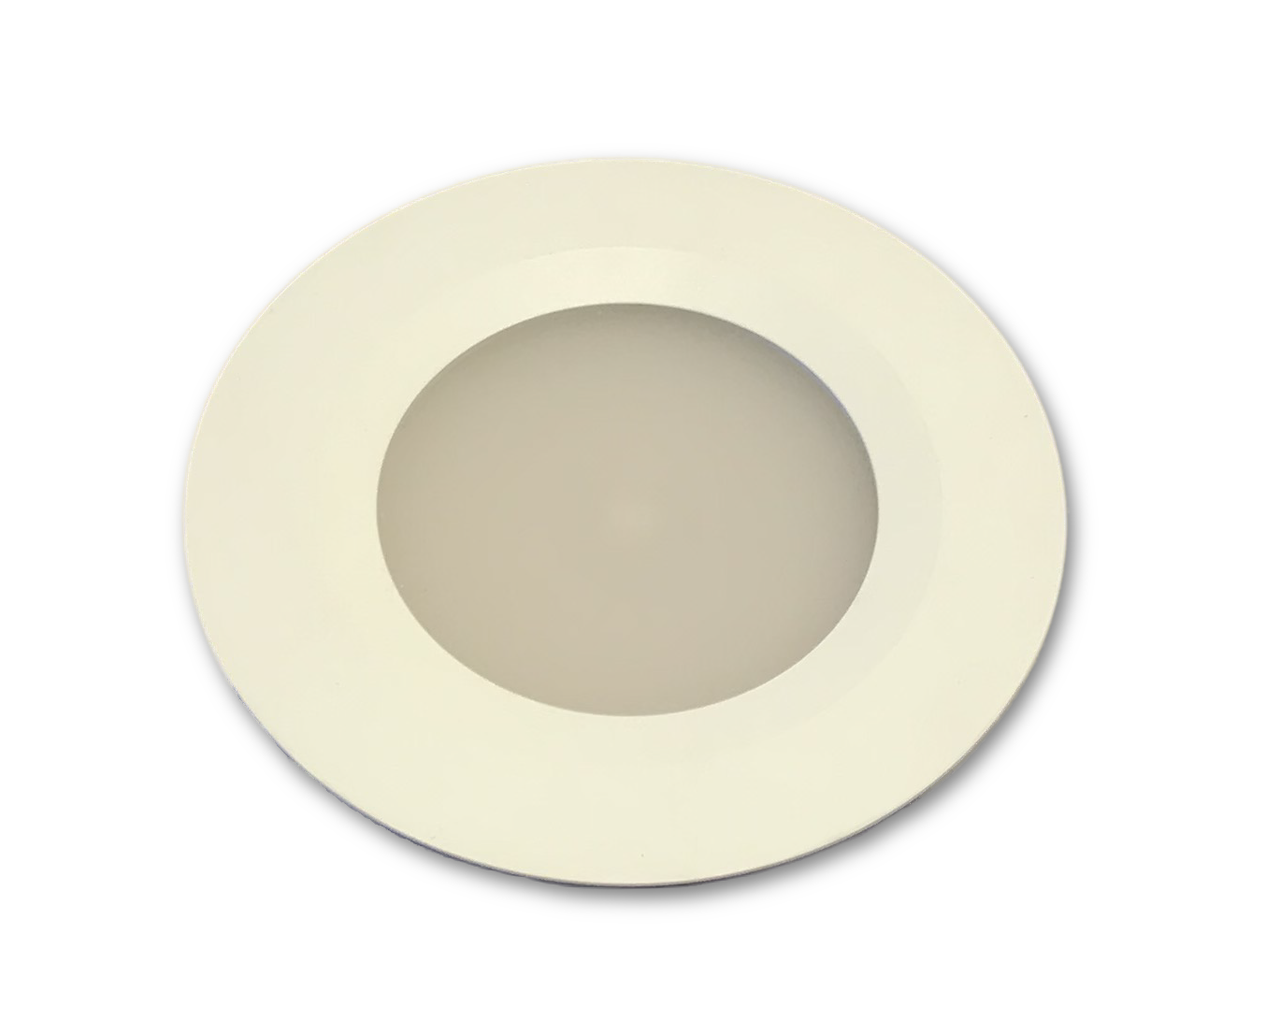 Flush mount LED downlight design